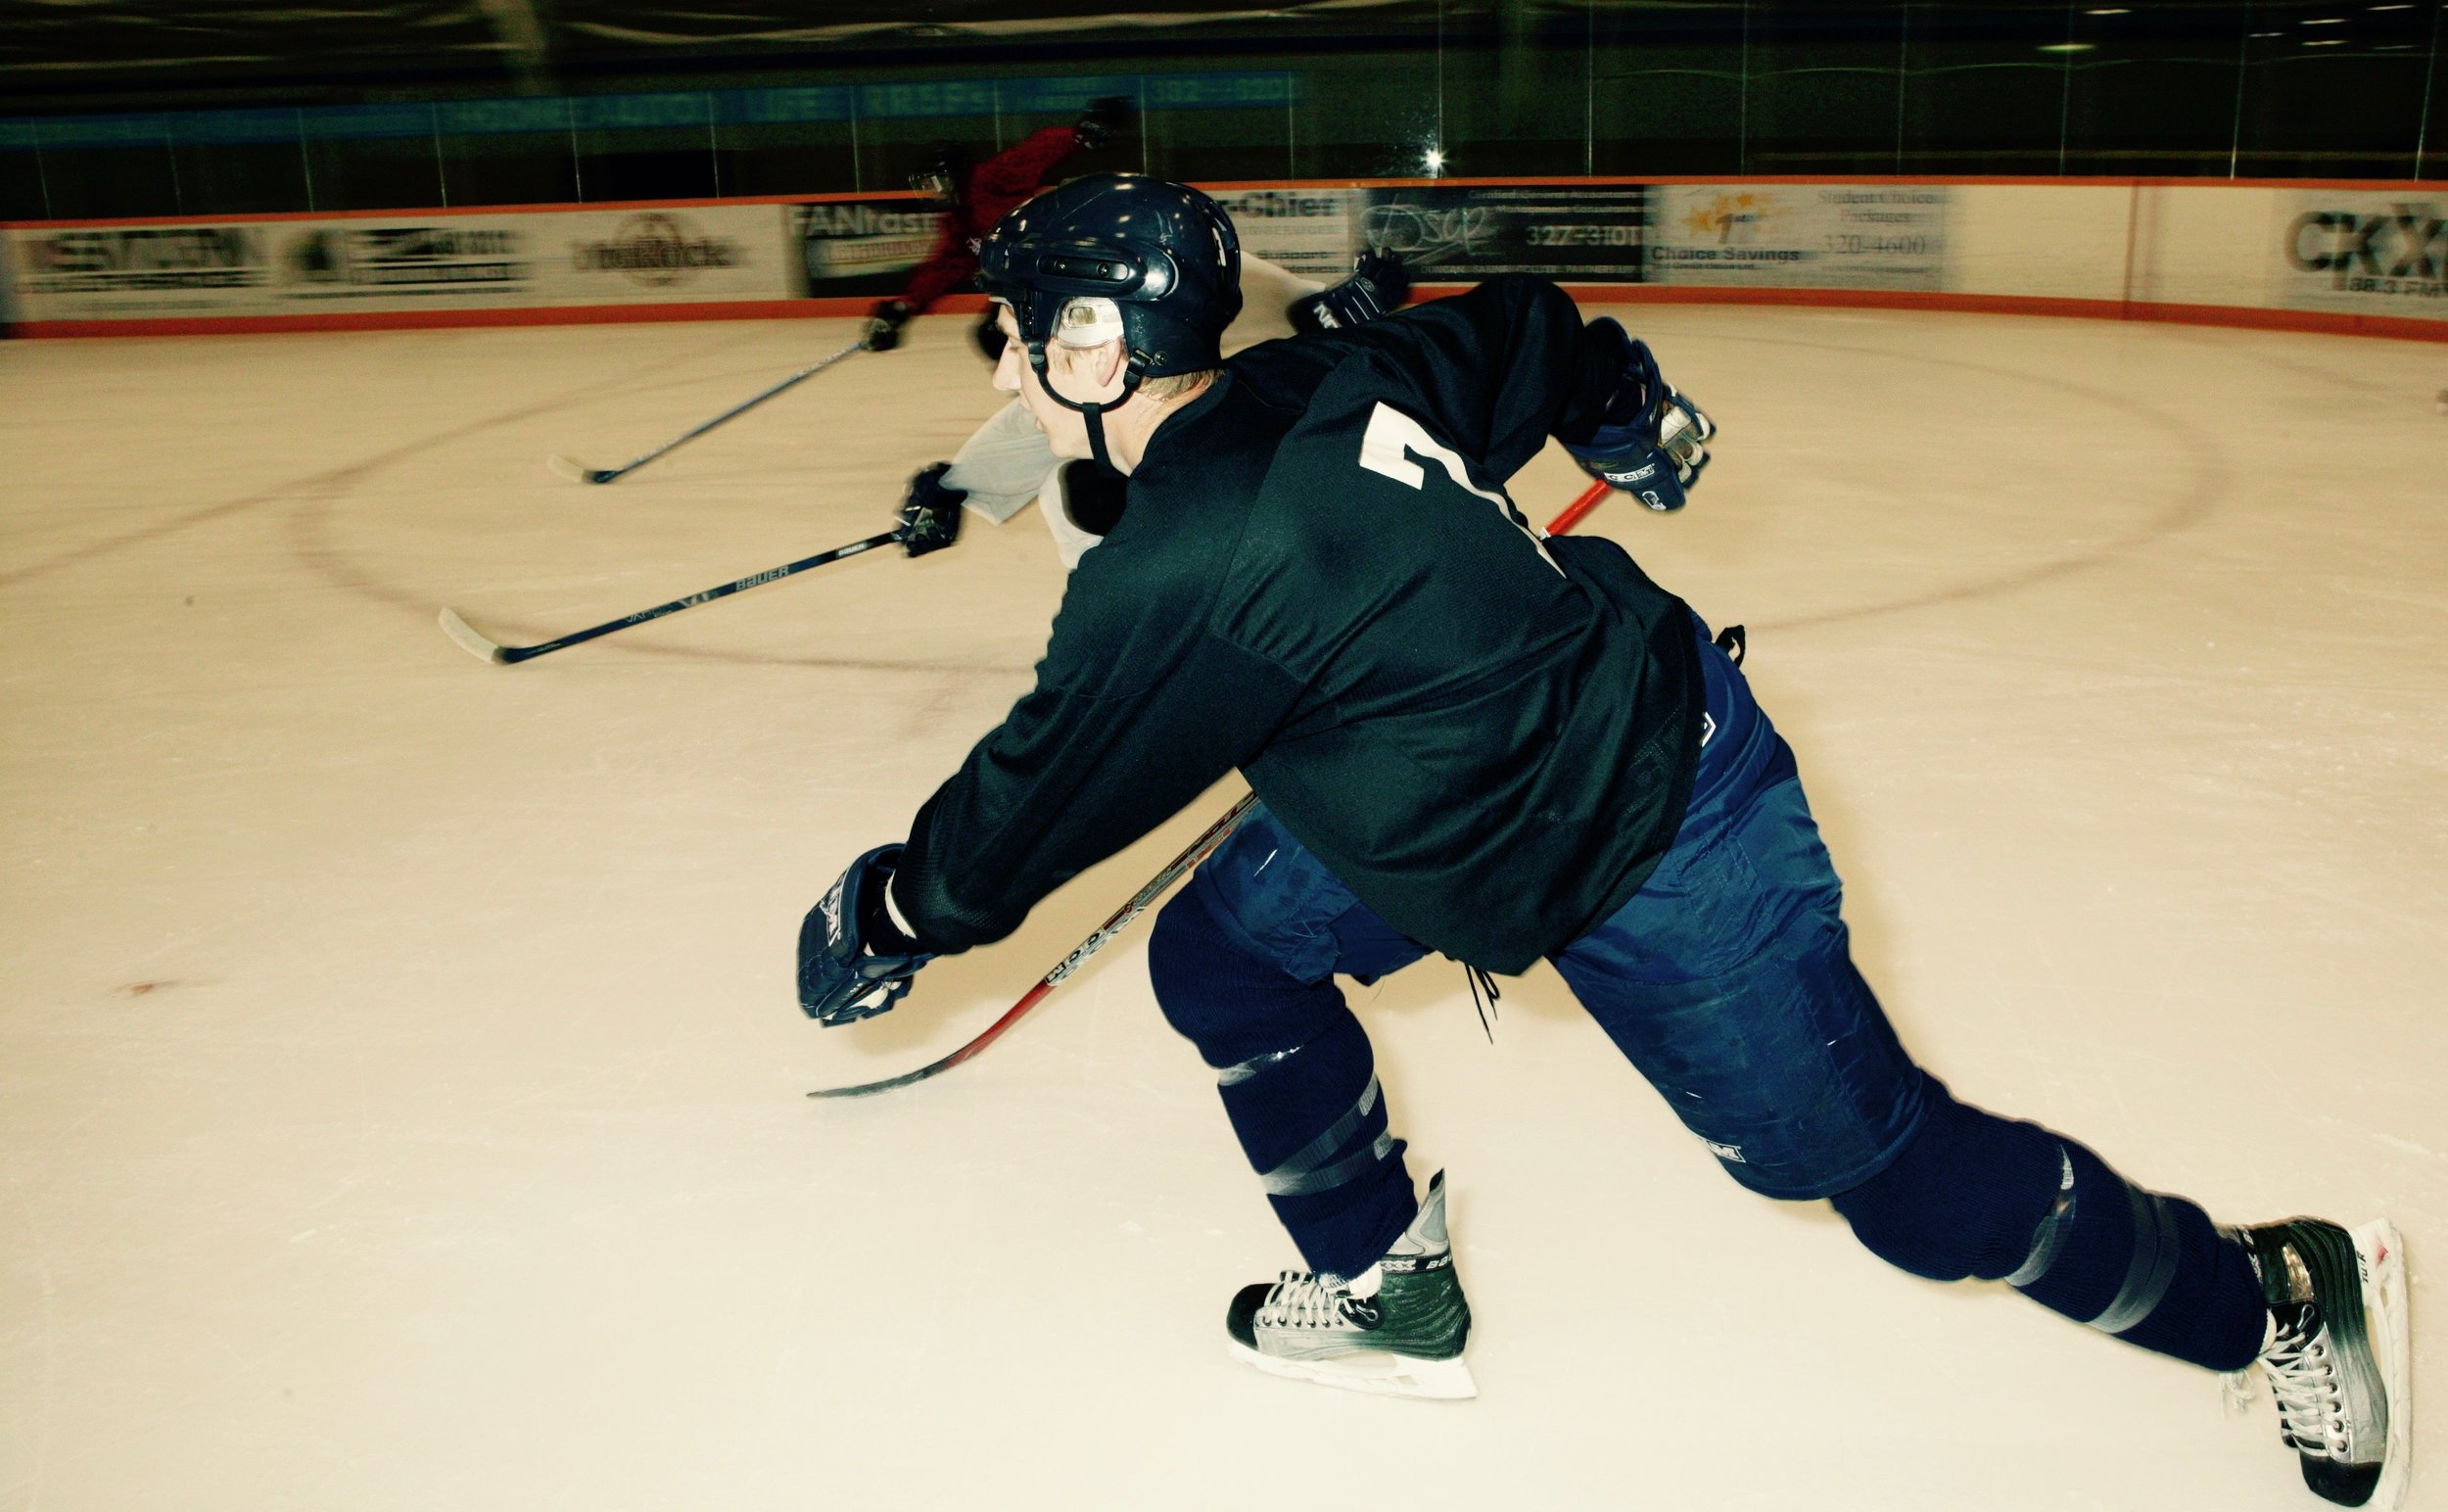 Technique Training For Hockey Players